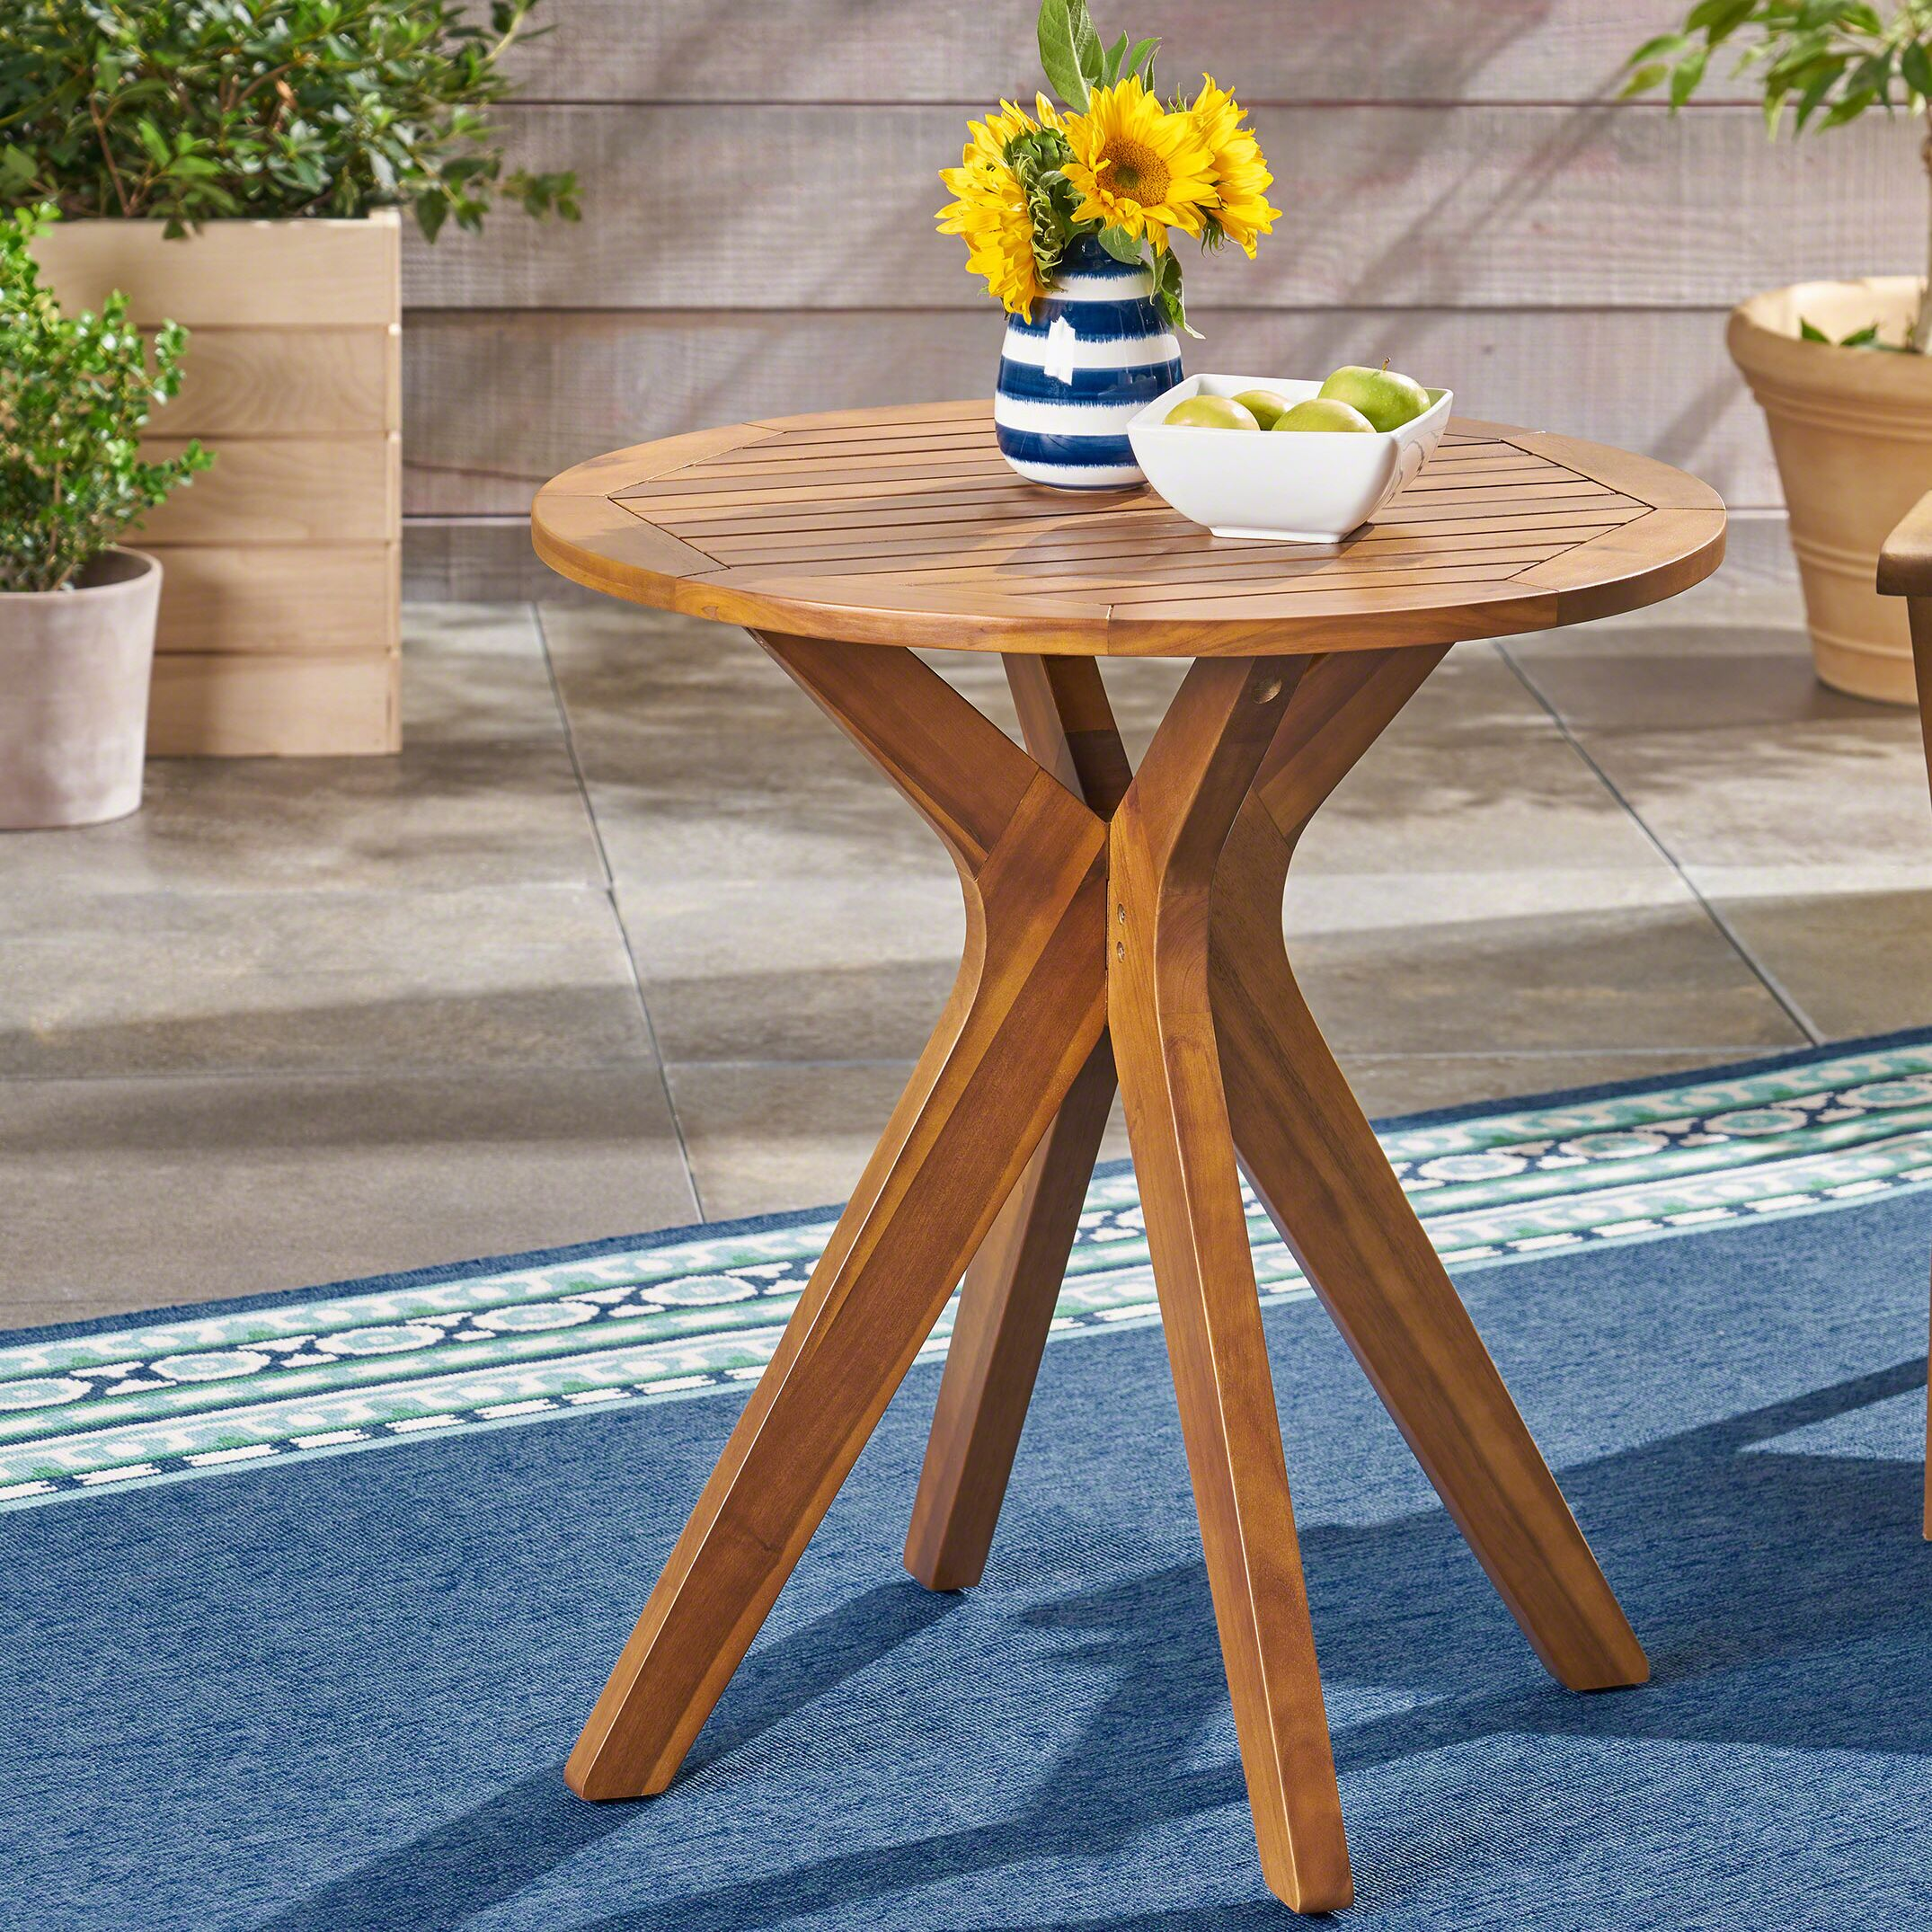 Pericles Outdoor Wooden Bistro Table Color: Teak